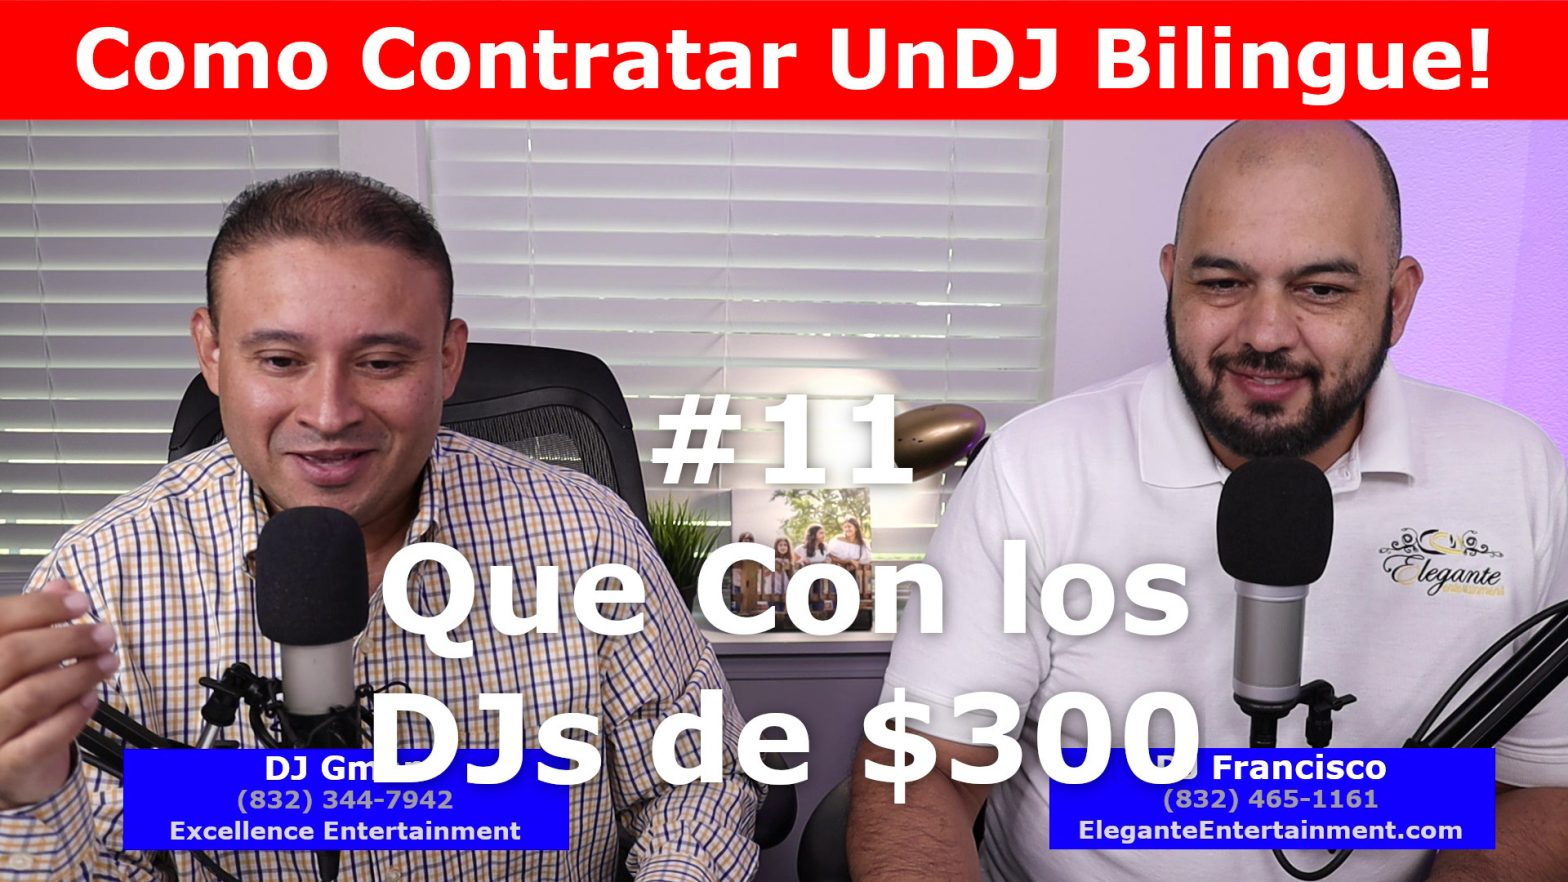 DJ in Houston   #11 DJs that Charge $300